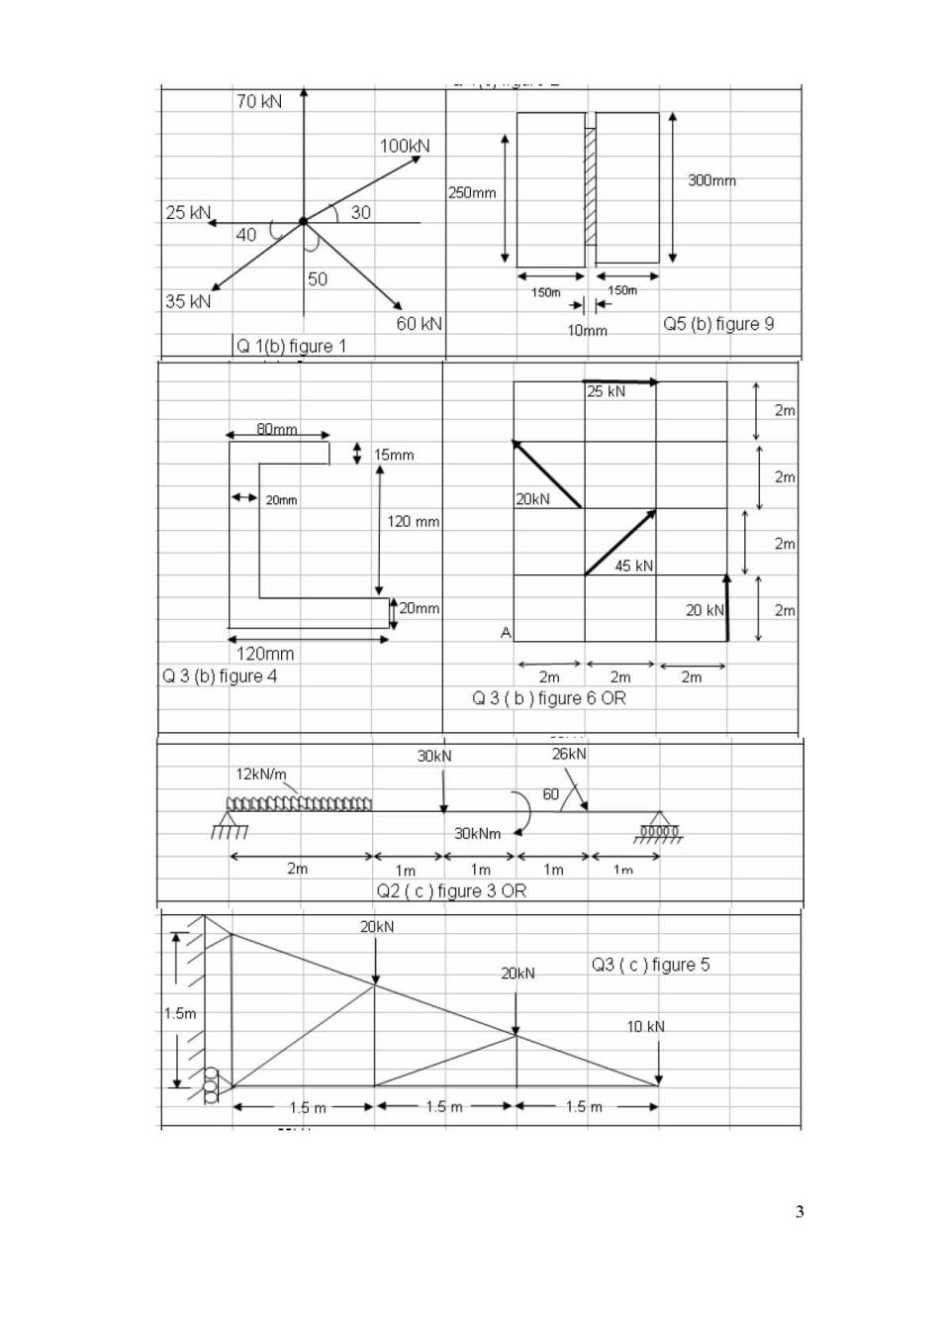 cpd paper style gtu Download free previous question papers (pdf) for gujarat technological  university first year engineering subjects - basic electronics, chemistry,  computer.